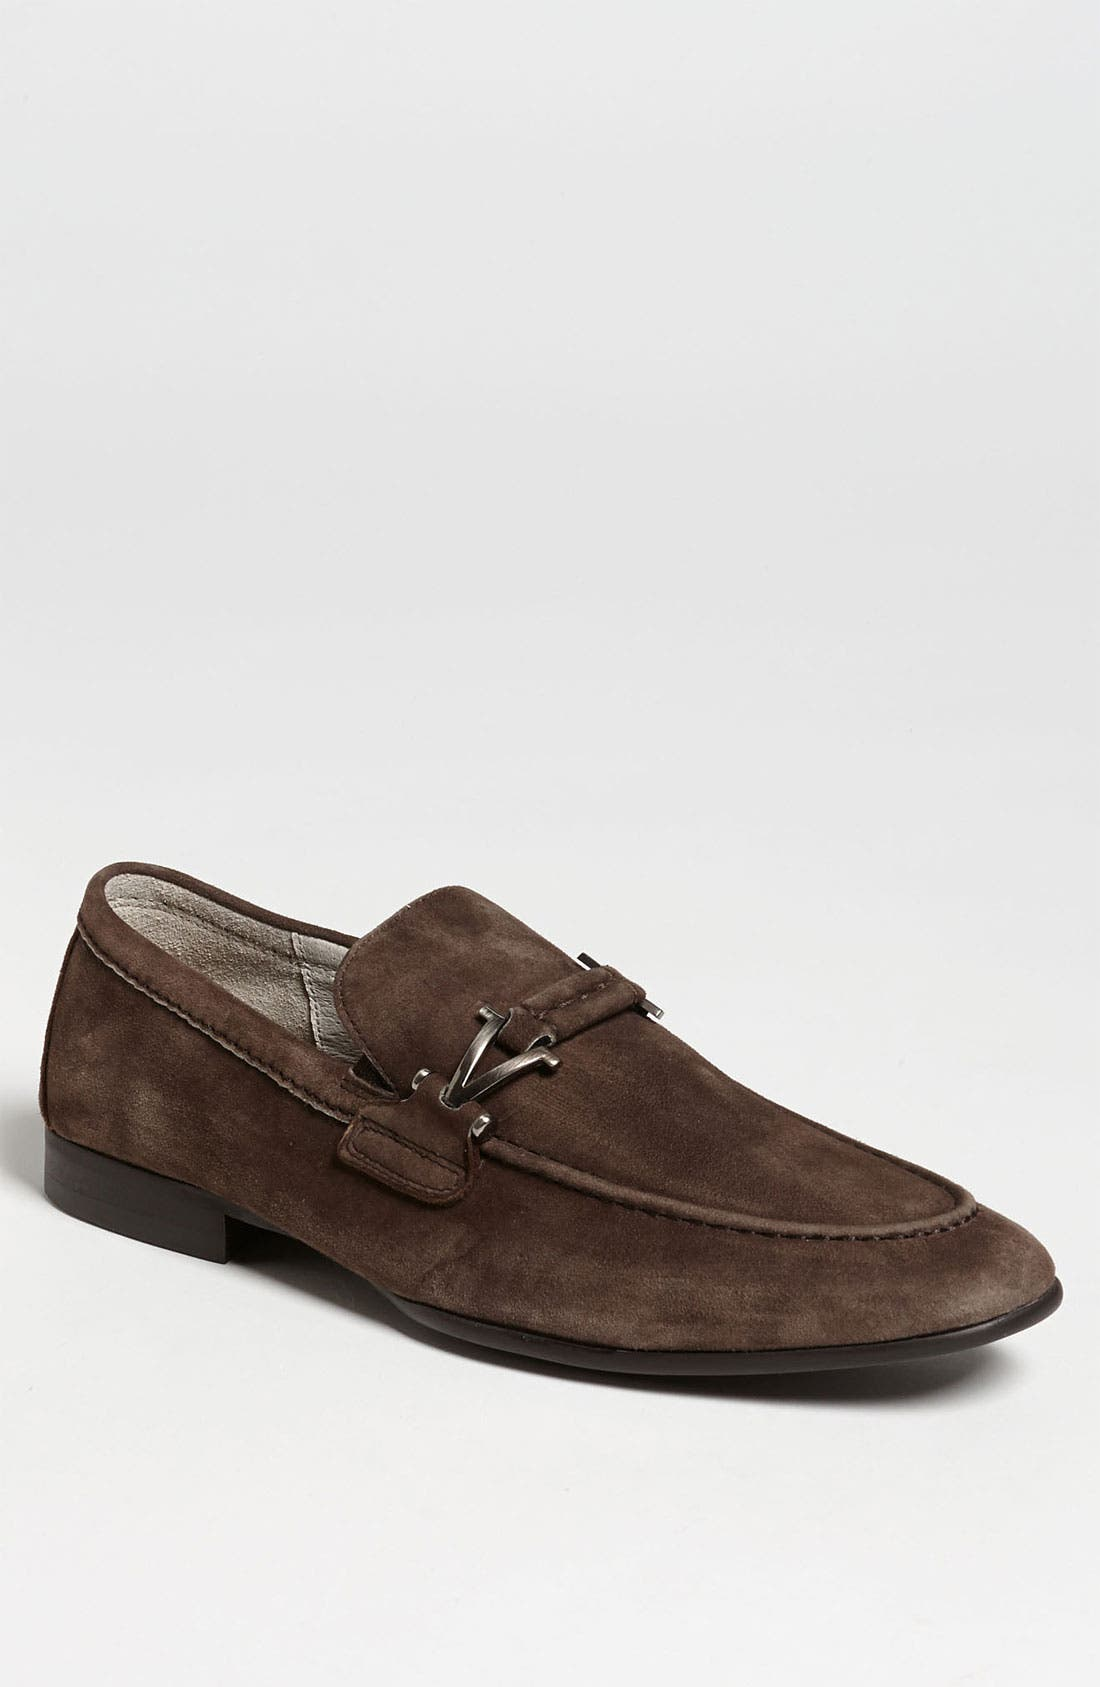 Main Image - Vince Camuto 'Castell' Suede Bit Loafer